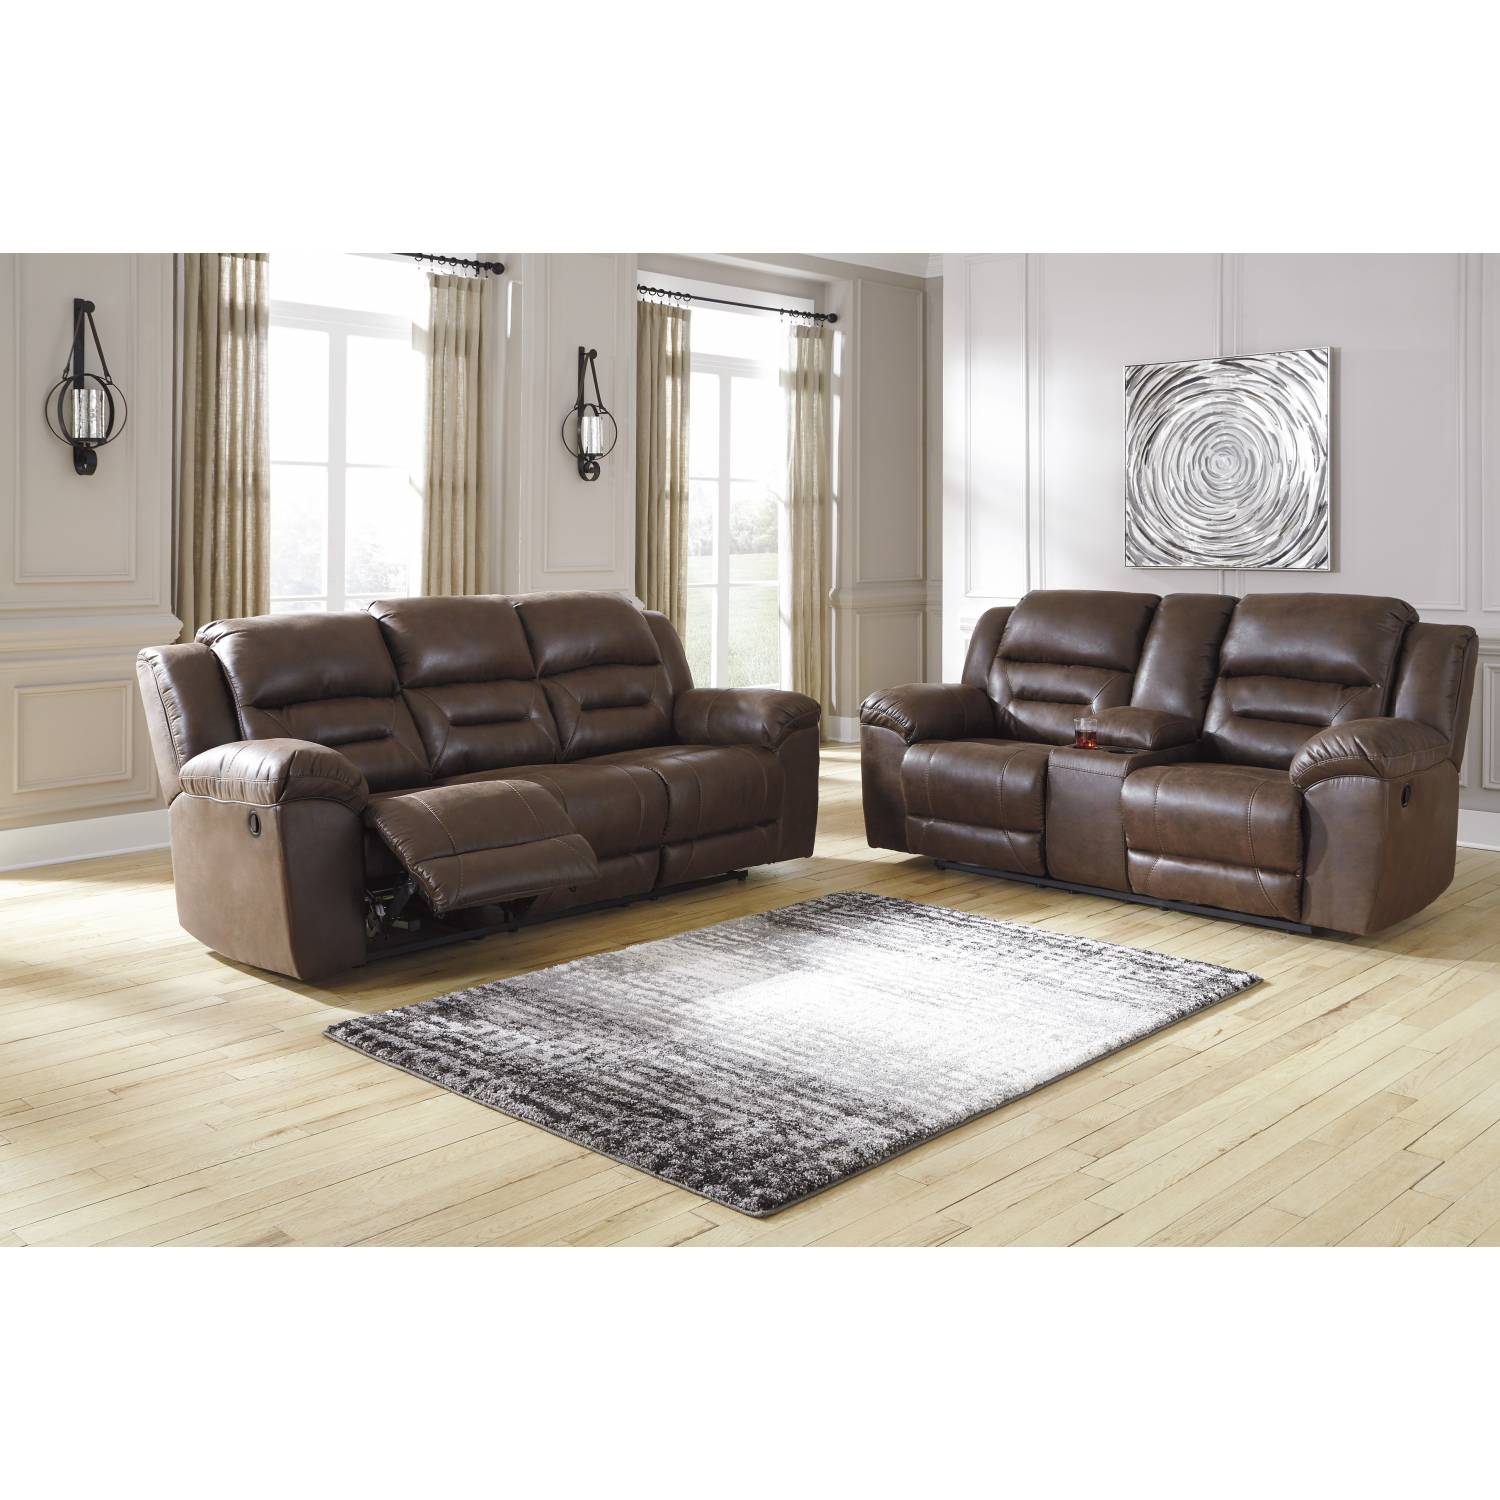 39904 Stoneland 2PC SETS Reclining Sofa + DBL Rec Loveseat w/Console